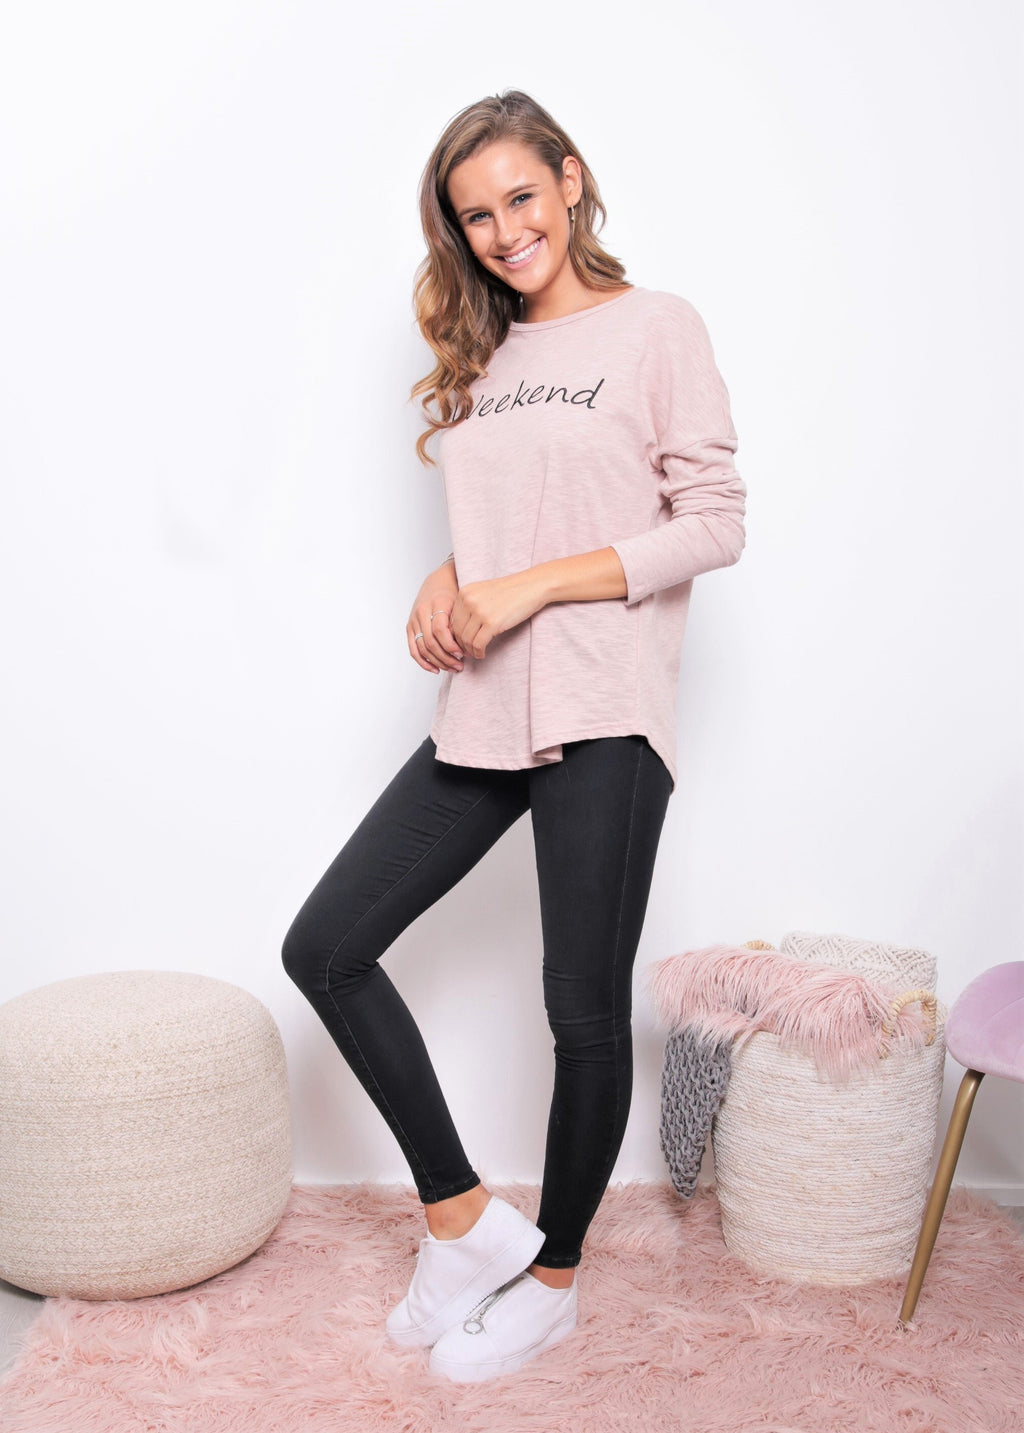 Weekend Long Sleeve Tee - Blush - Kenzie Tenzie